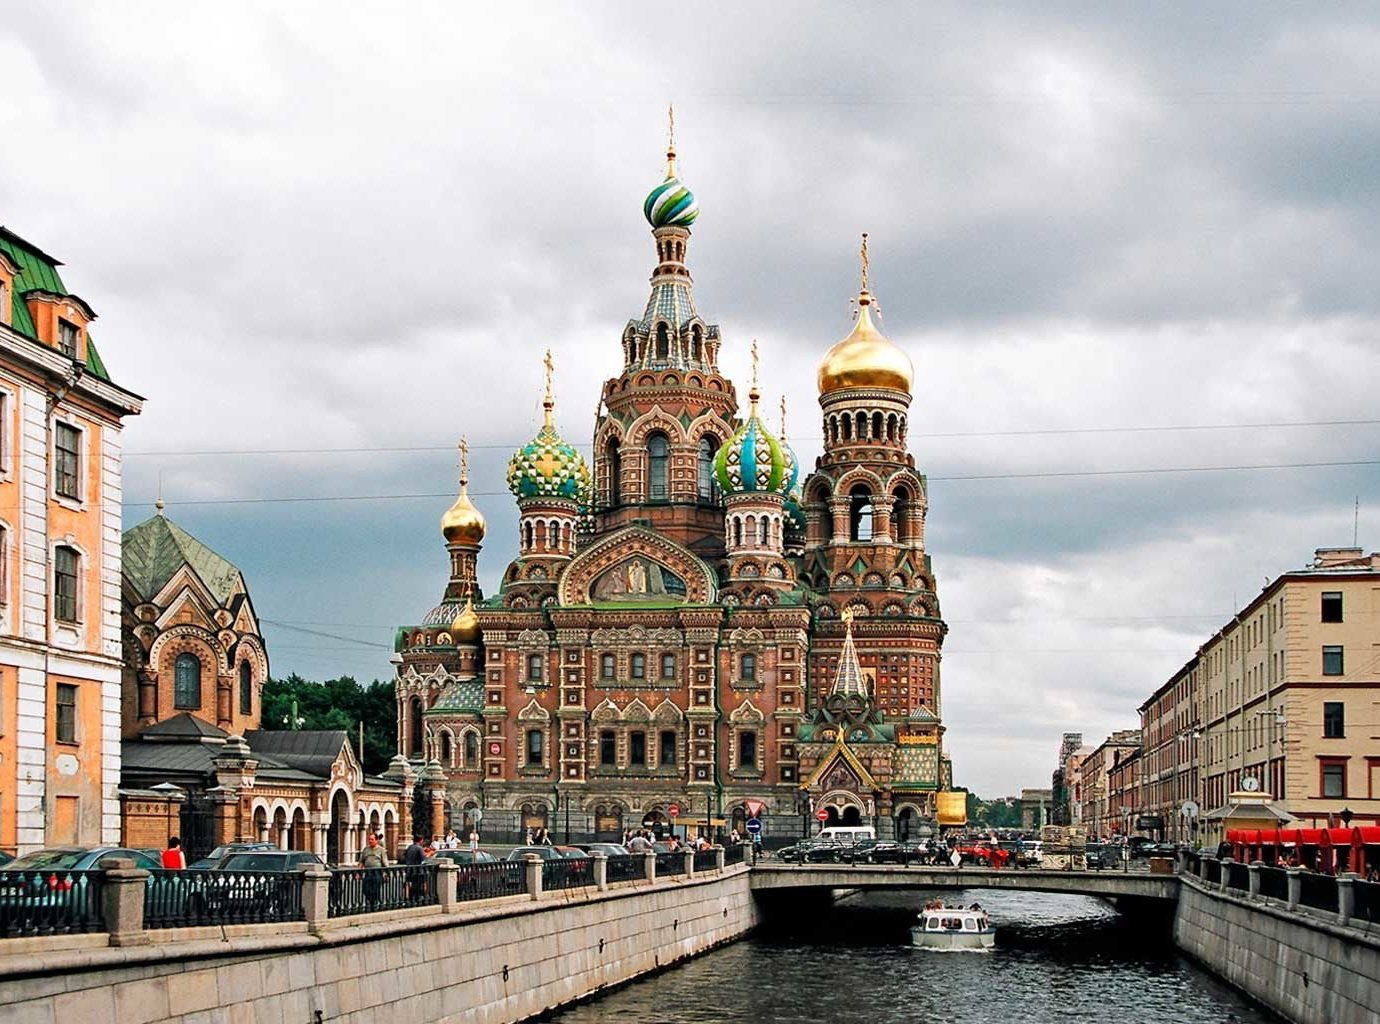 Architecture Buildings Cultural Drink Eat Exterior Hotels Luxury Travel Romance Shop outdoor sky building landmark Town City cityscape urban area tourism River waterway cathedral place of worship Church tower town square travel